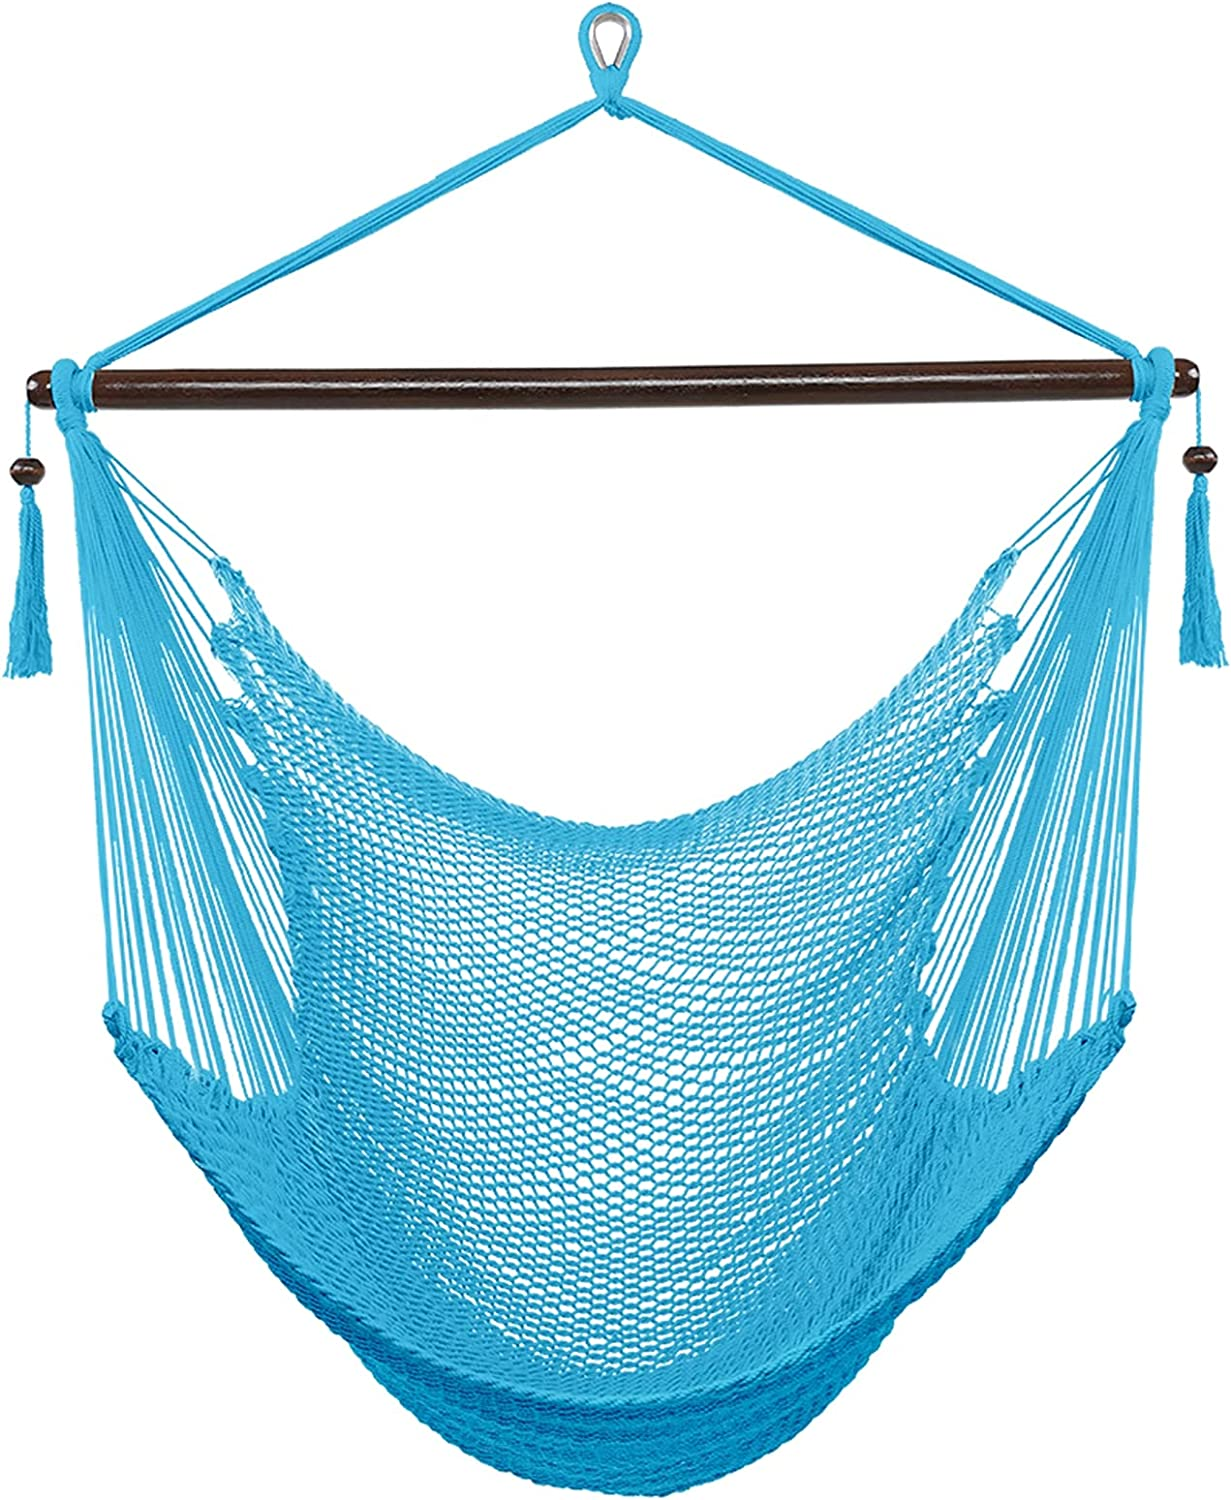 FSBYB safety Hammock Chair Relax Swing Polyester Ropes Sale Special Price for Weave